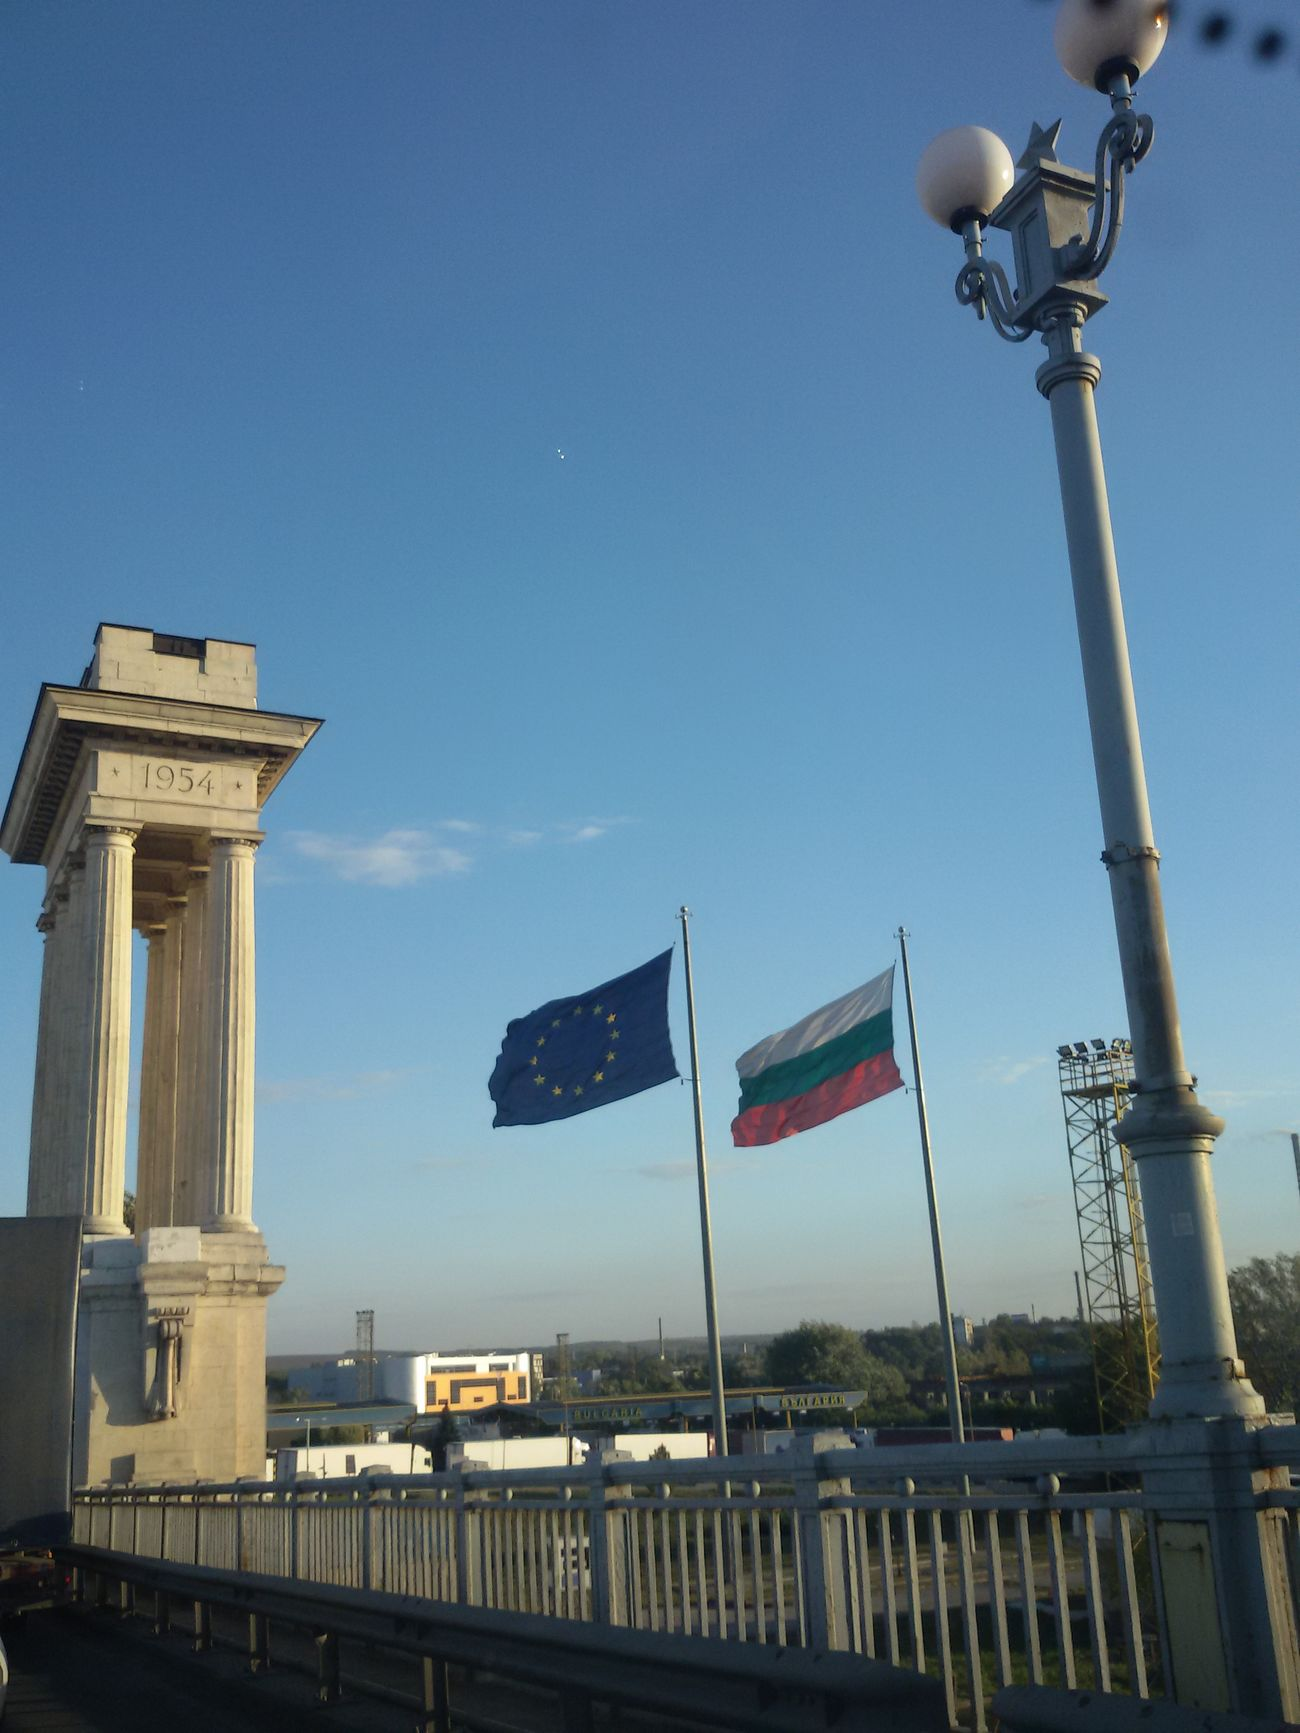 Welcome to Bulgaria Border Nationalflag Borderline Outdoors Hanging Out Drivebyphotography Drive By Shooting Danube Bridge From My Point Of View Check This Out Hello World Eyee4photography Ilovephotography Taking Photos EyeEm Gallery Mobilephotography Ontheroad No People City EyeEmBestPics Enjoying The View EyeEm Best Shots Eyeemphotography Frommycarwindow